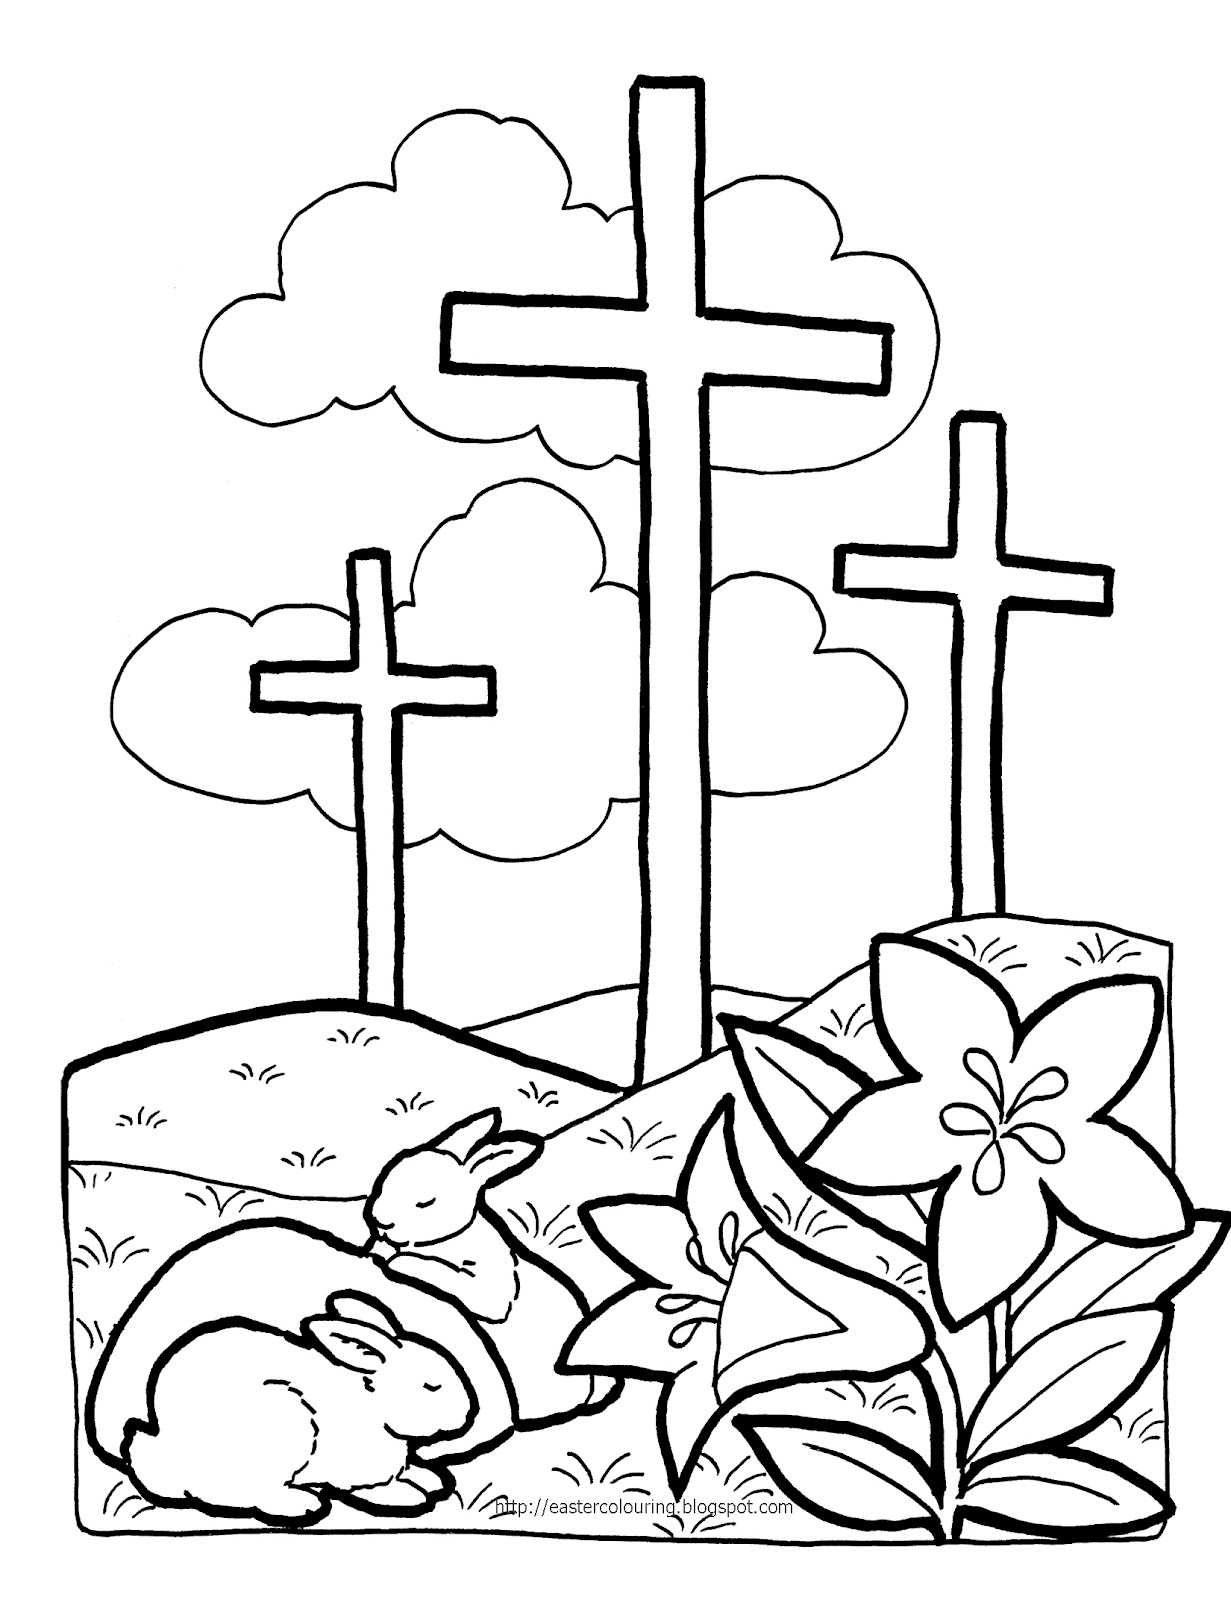 Christian Coloring Pages Best Free Printable Christian Coloring Pages For Kids  Best Coloring .